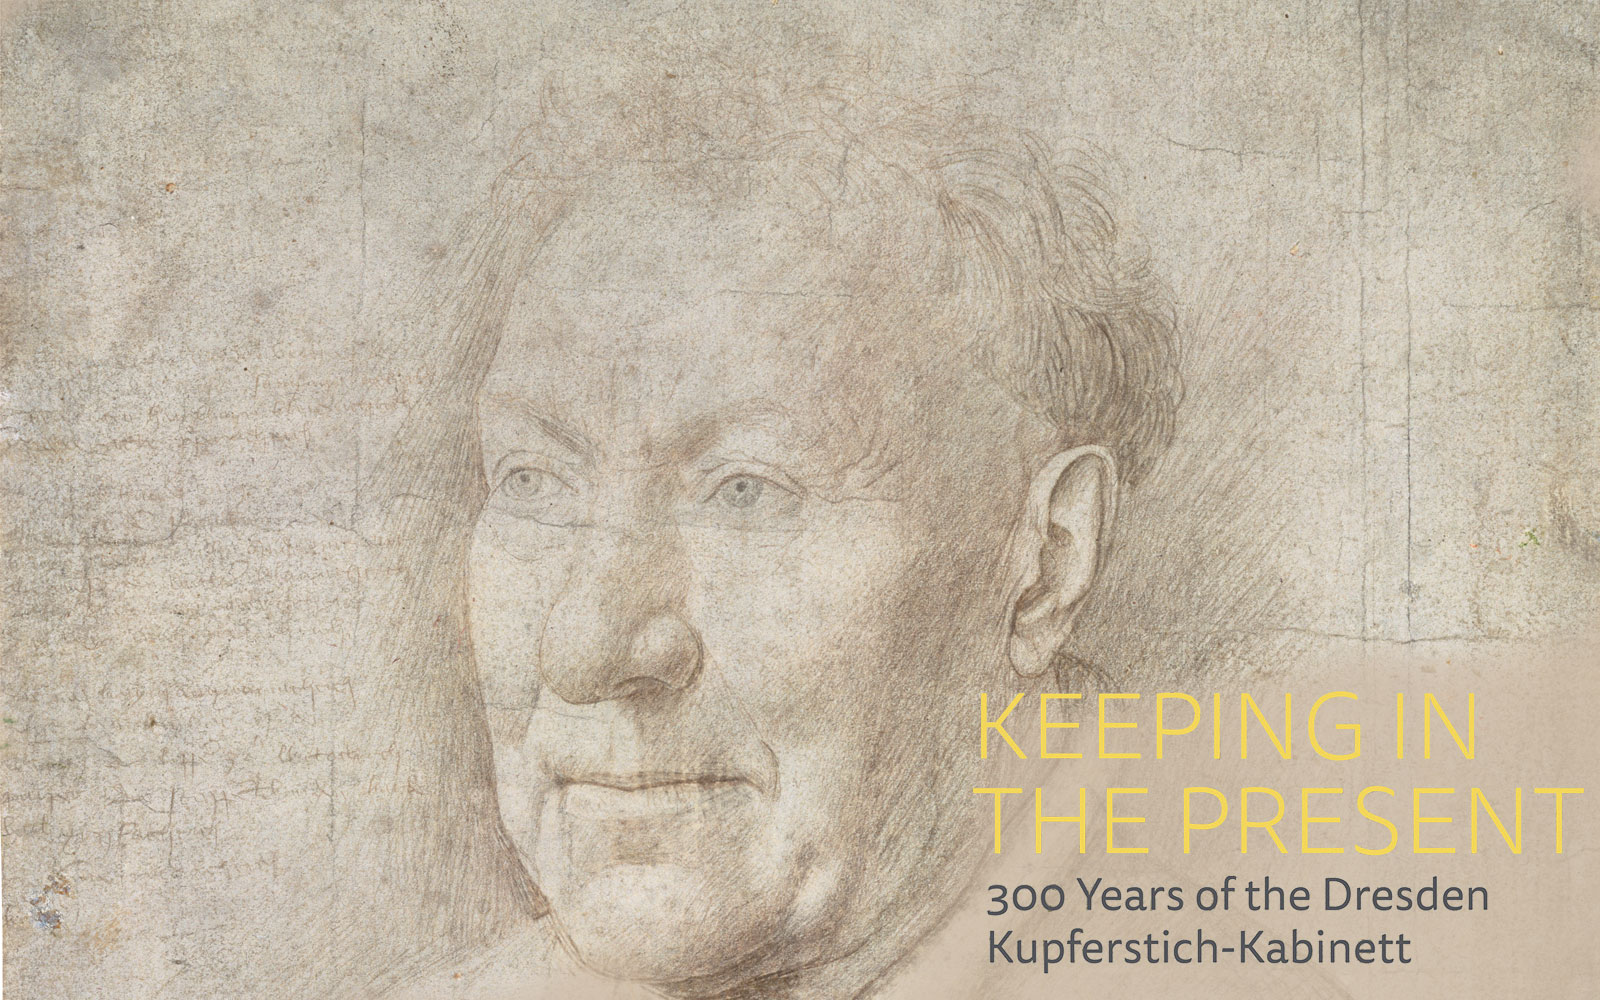 Graphite portrait of an old man with text that sayd Keeping Present: 300 Years of the Dresden Kupferstich-Kabinett